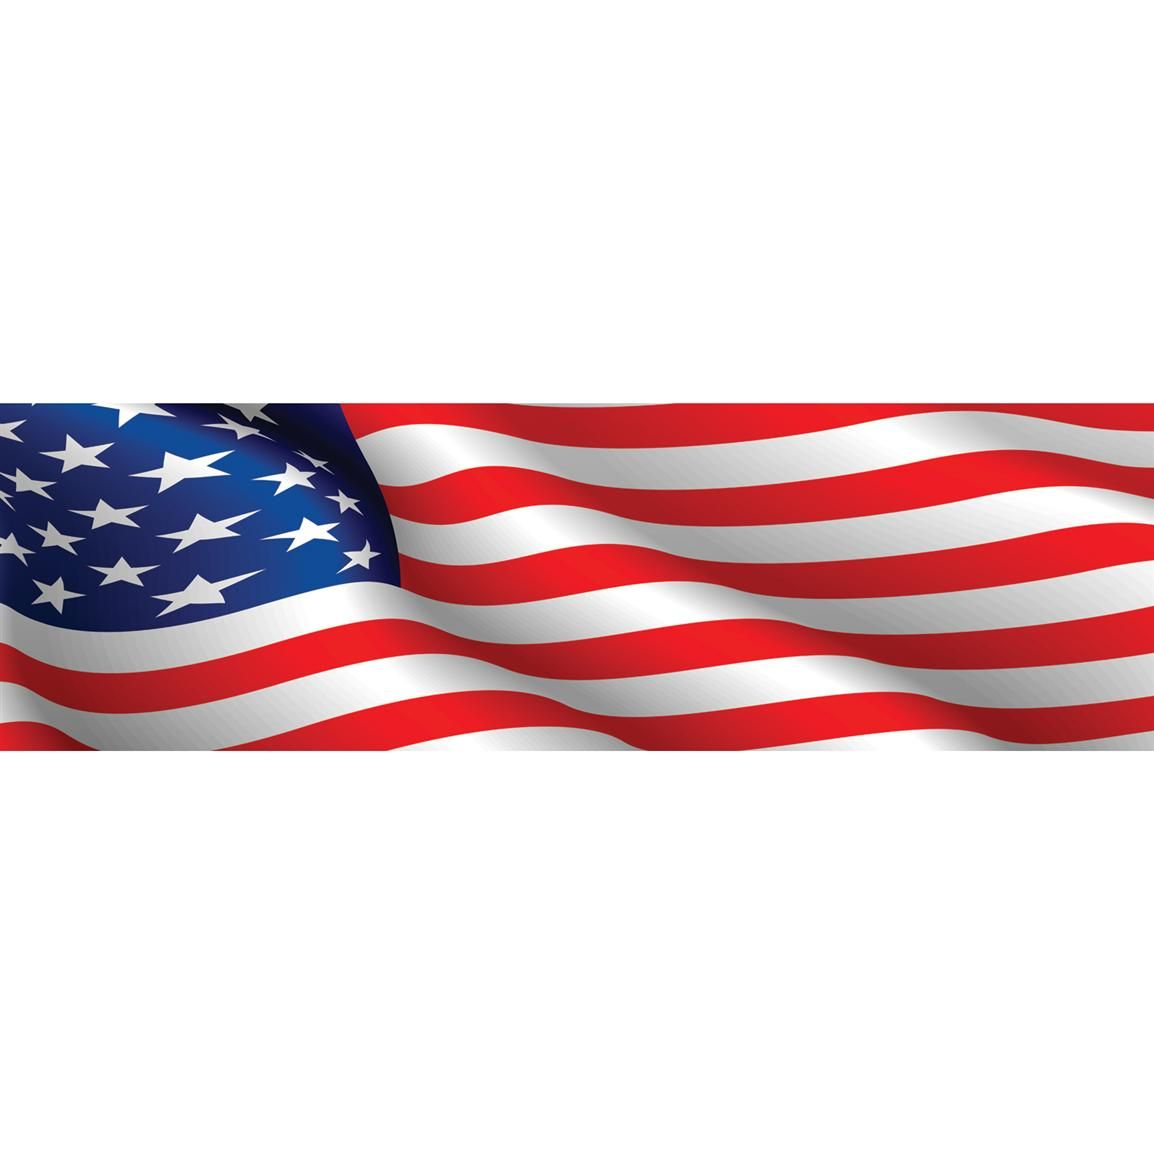 American Flag Graphic Free Download Clip Art Free Clip Art Flag Free Clip Art American Flag